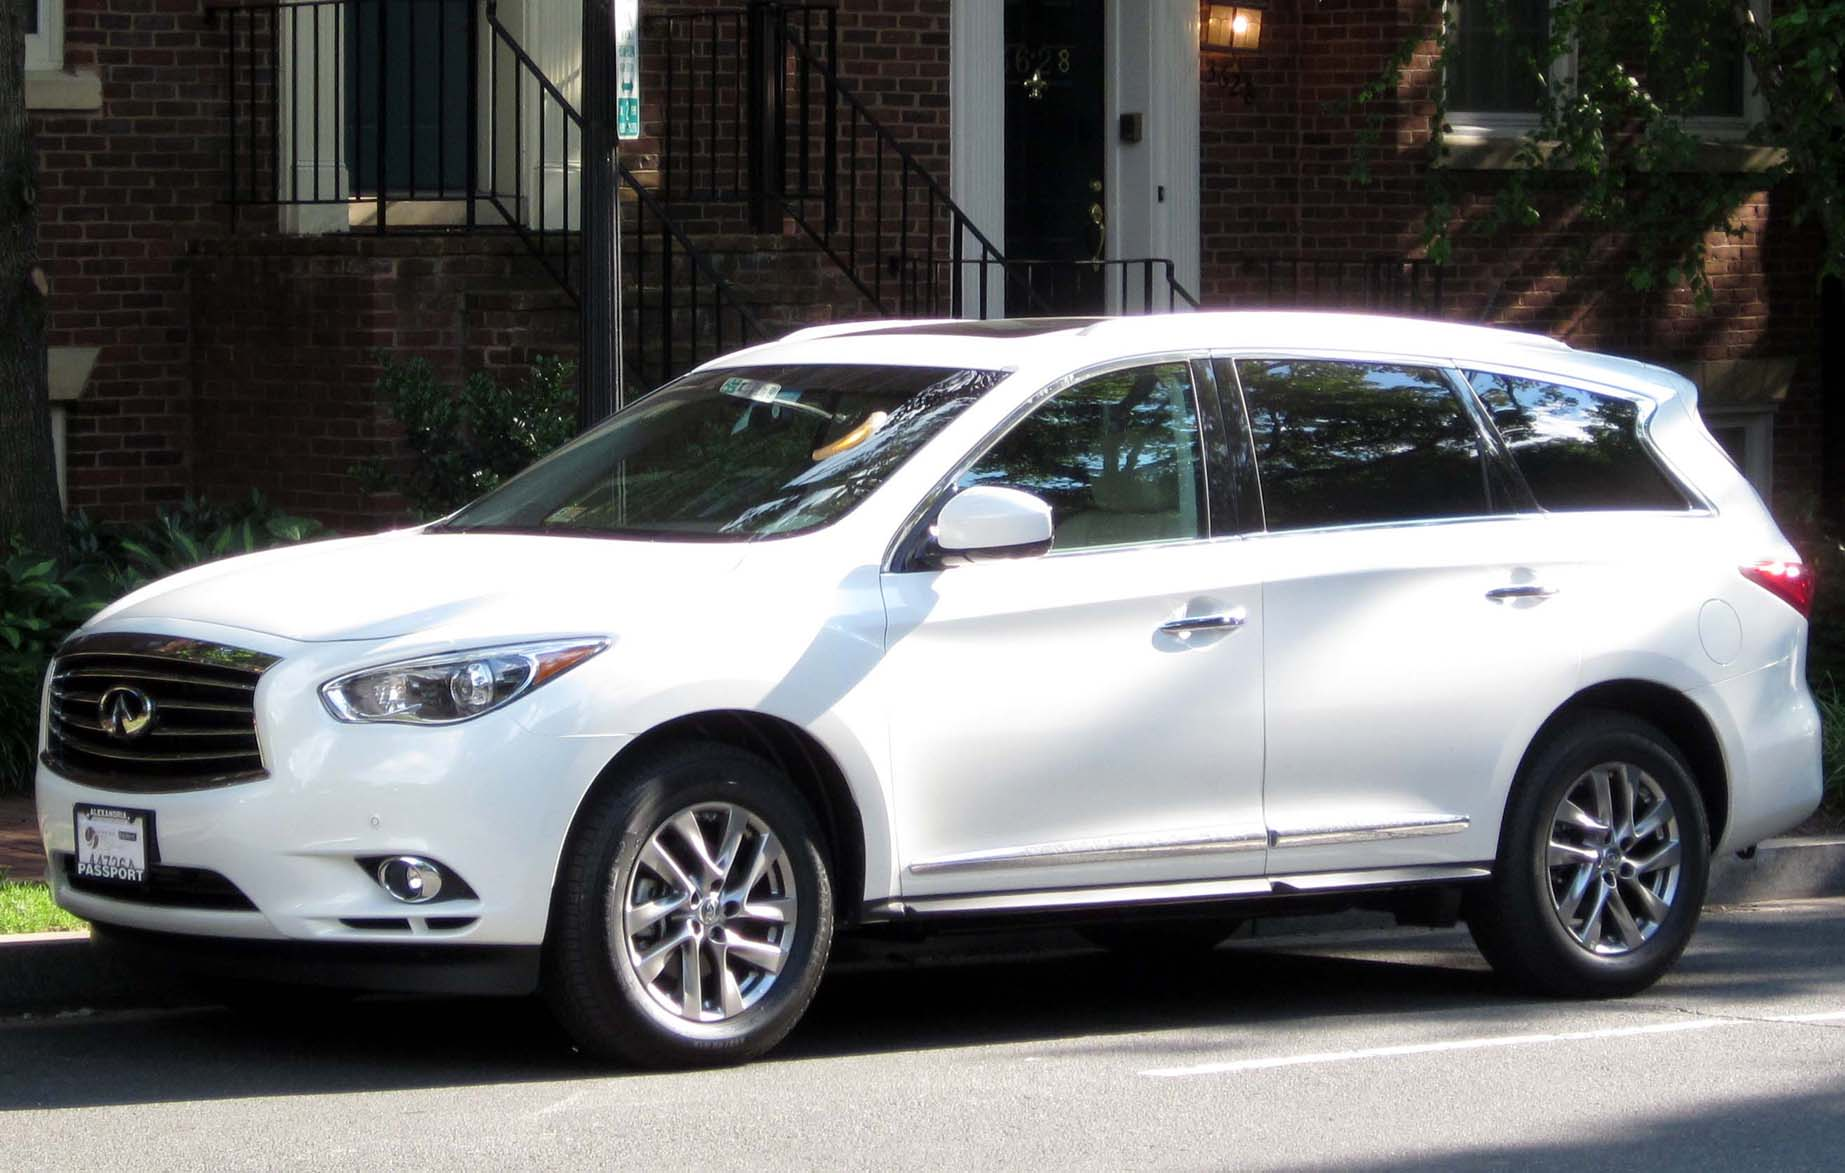 File:2013 Infiniti JX -- 06-14-2012.JPG - Wikimedia Commons